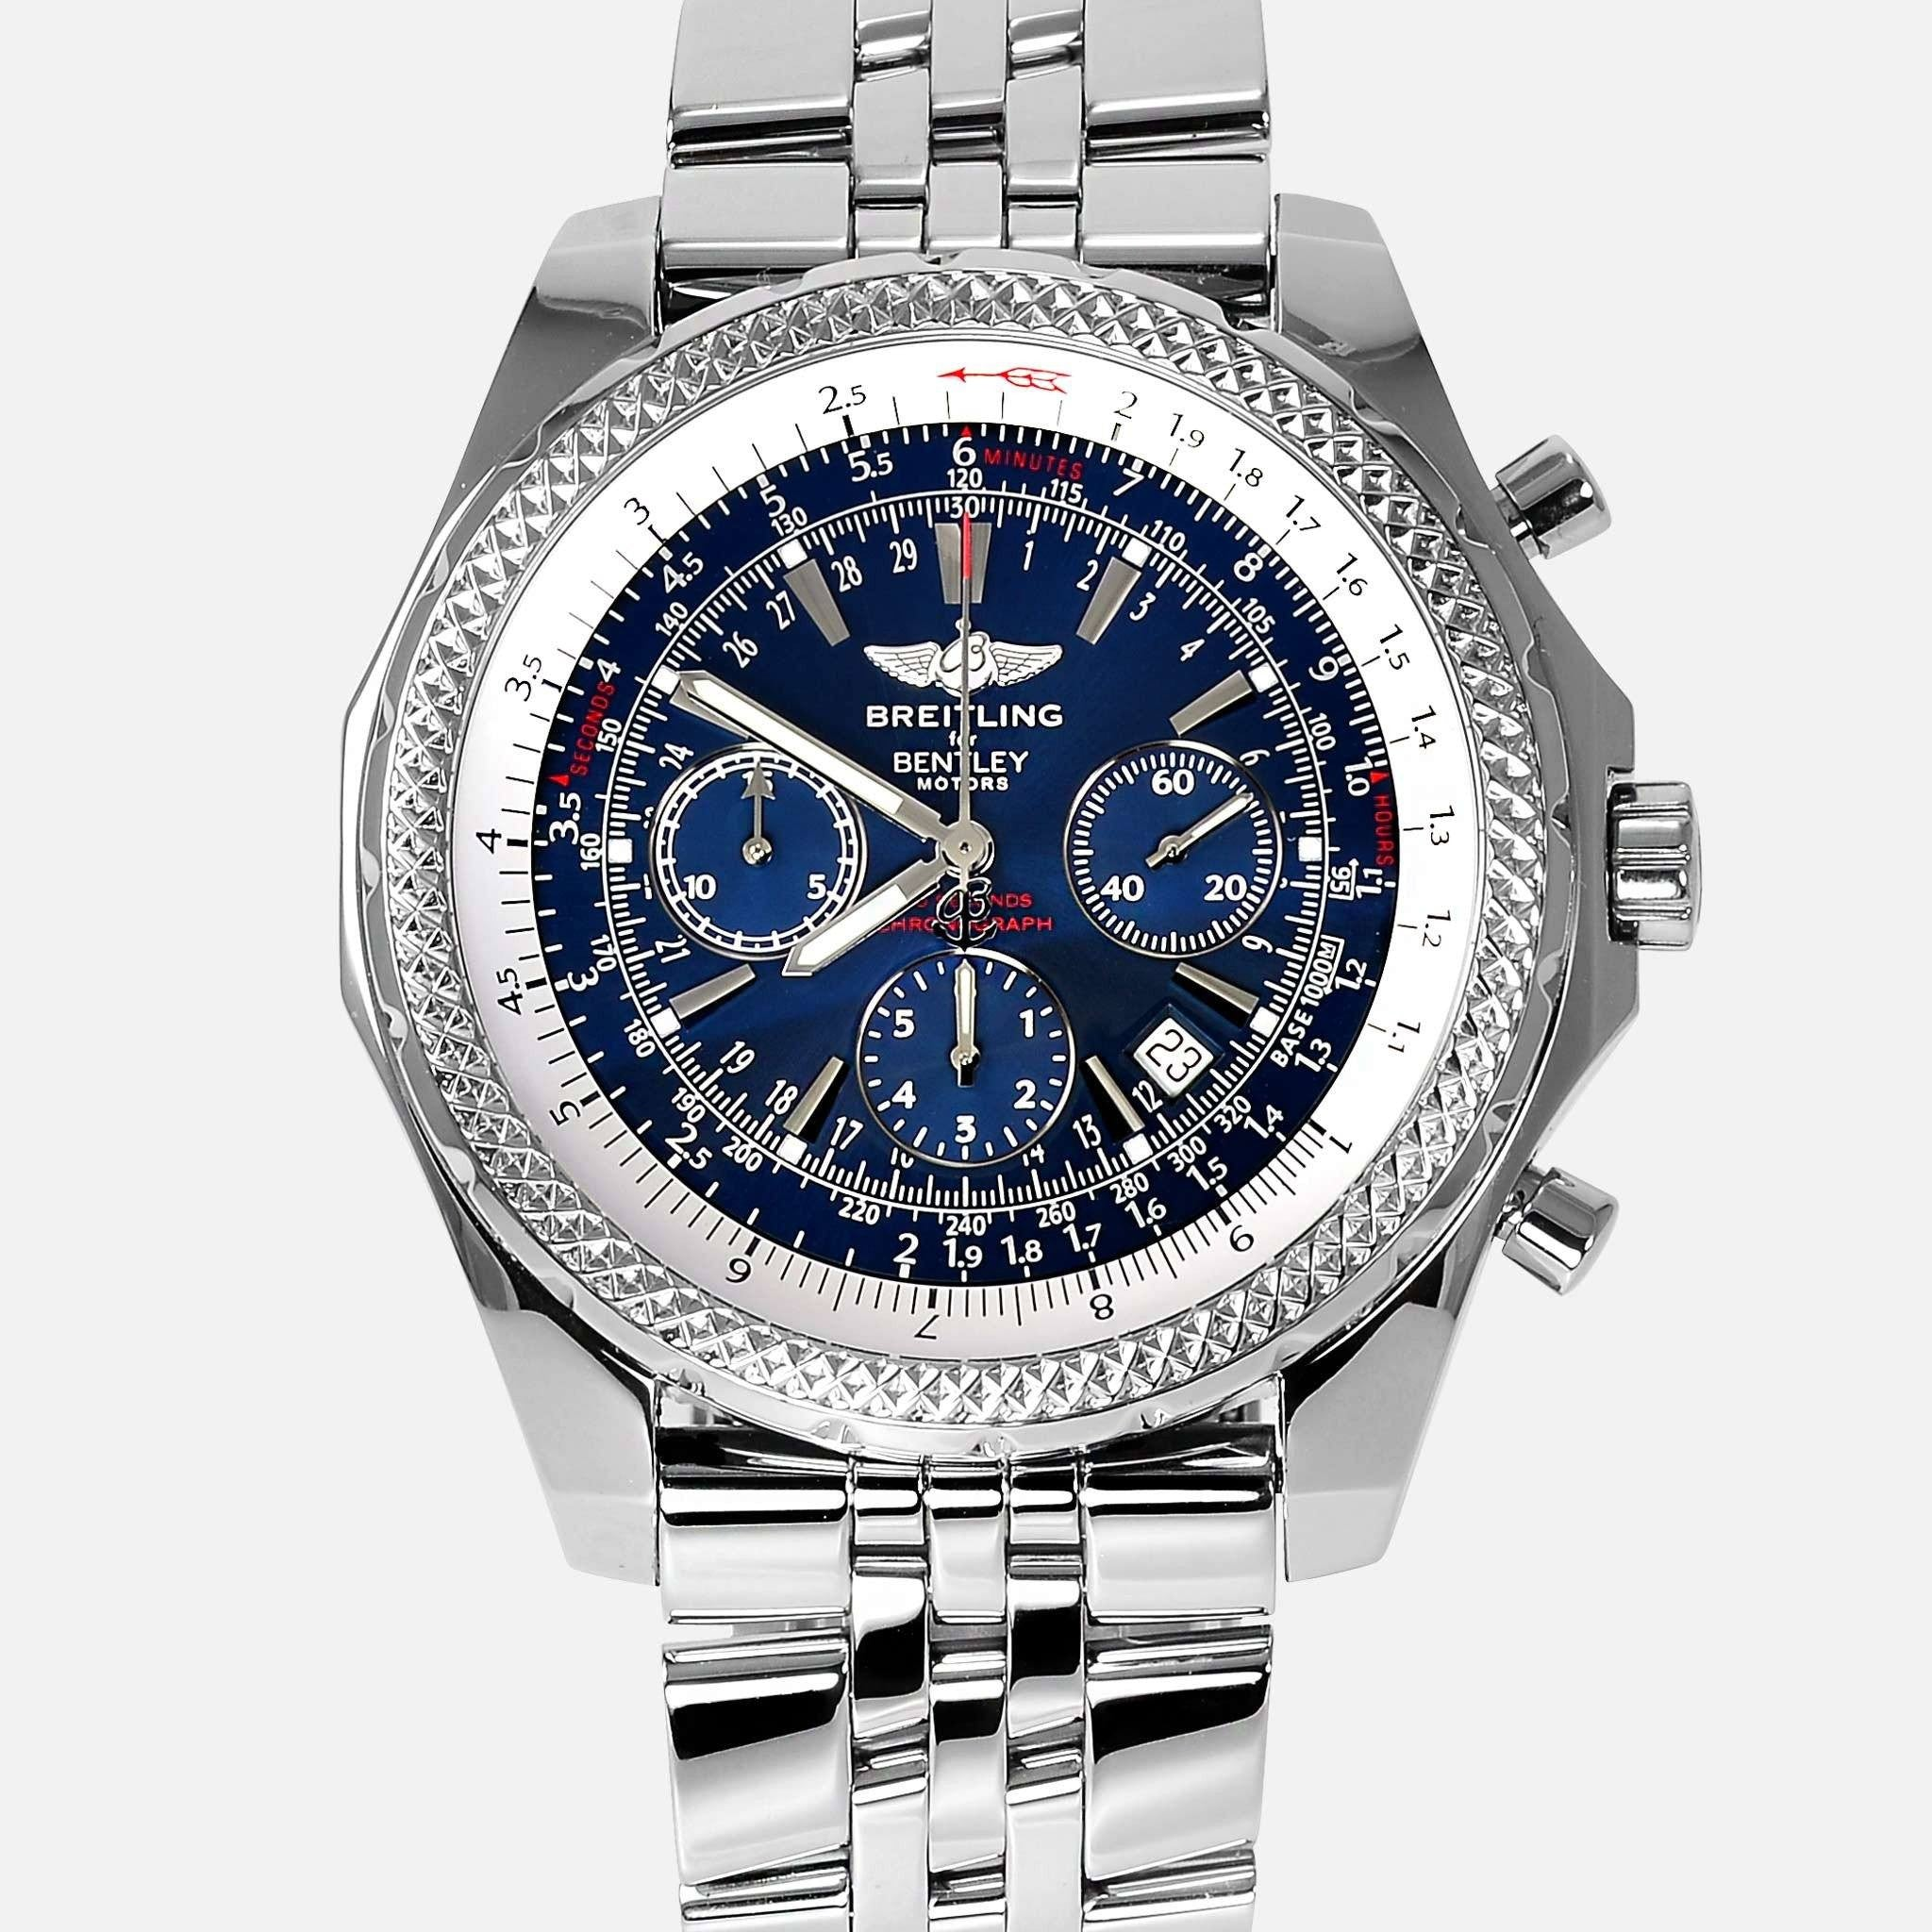 blue topnotch bentley watch edition wow gorgeous special breitling dial